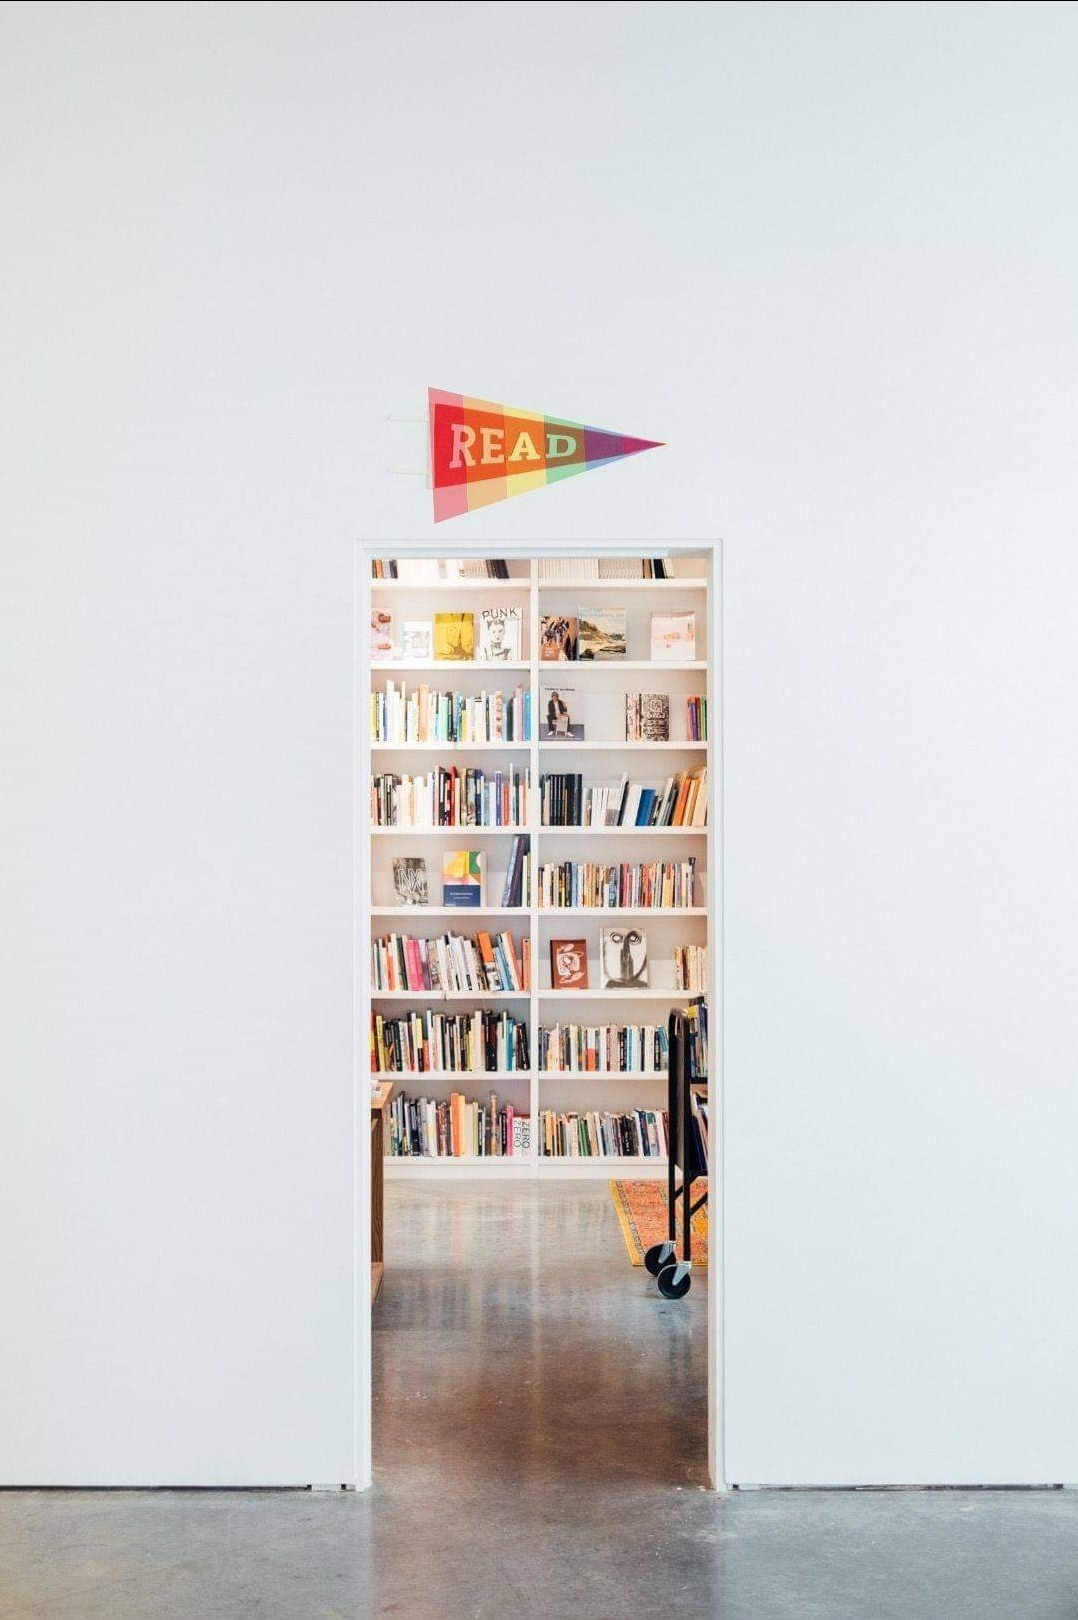 Bookshelves in what looks to be a library, topped with a rainbow flag on which the text 'Read' is displayed